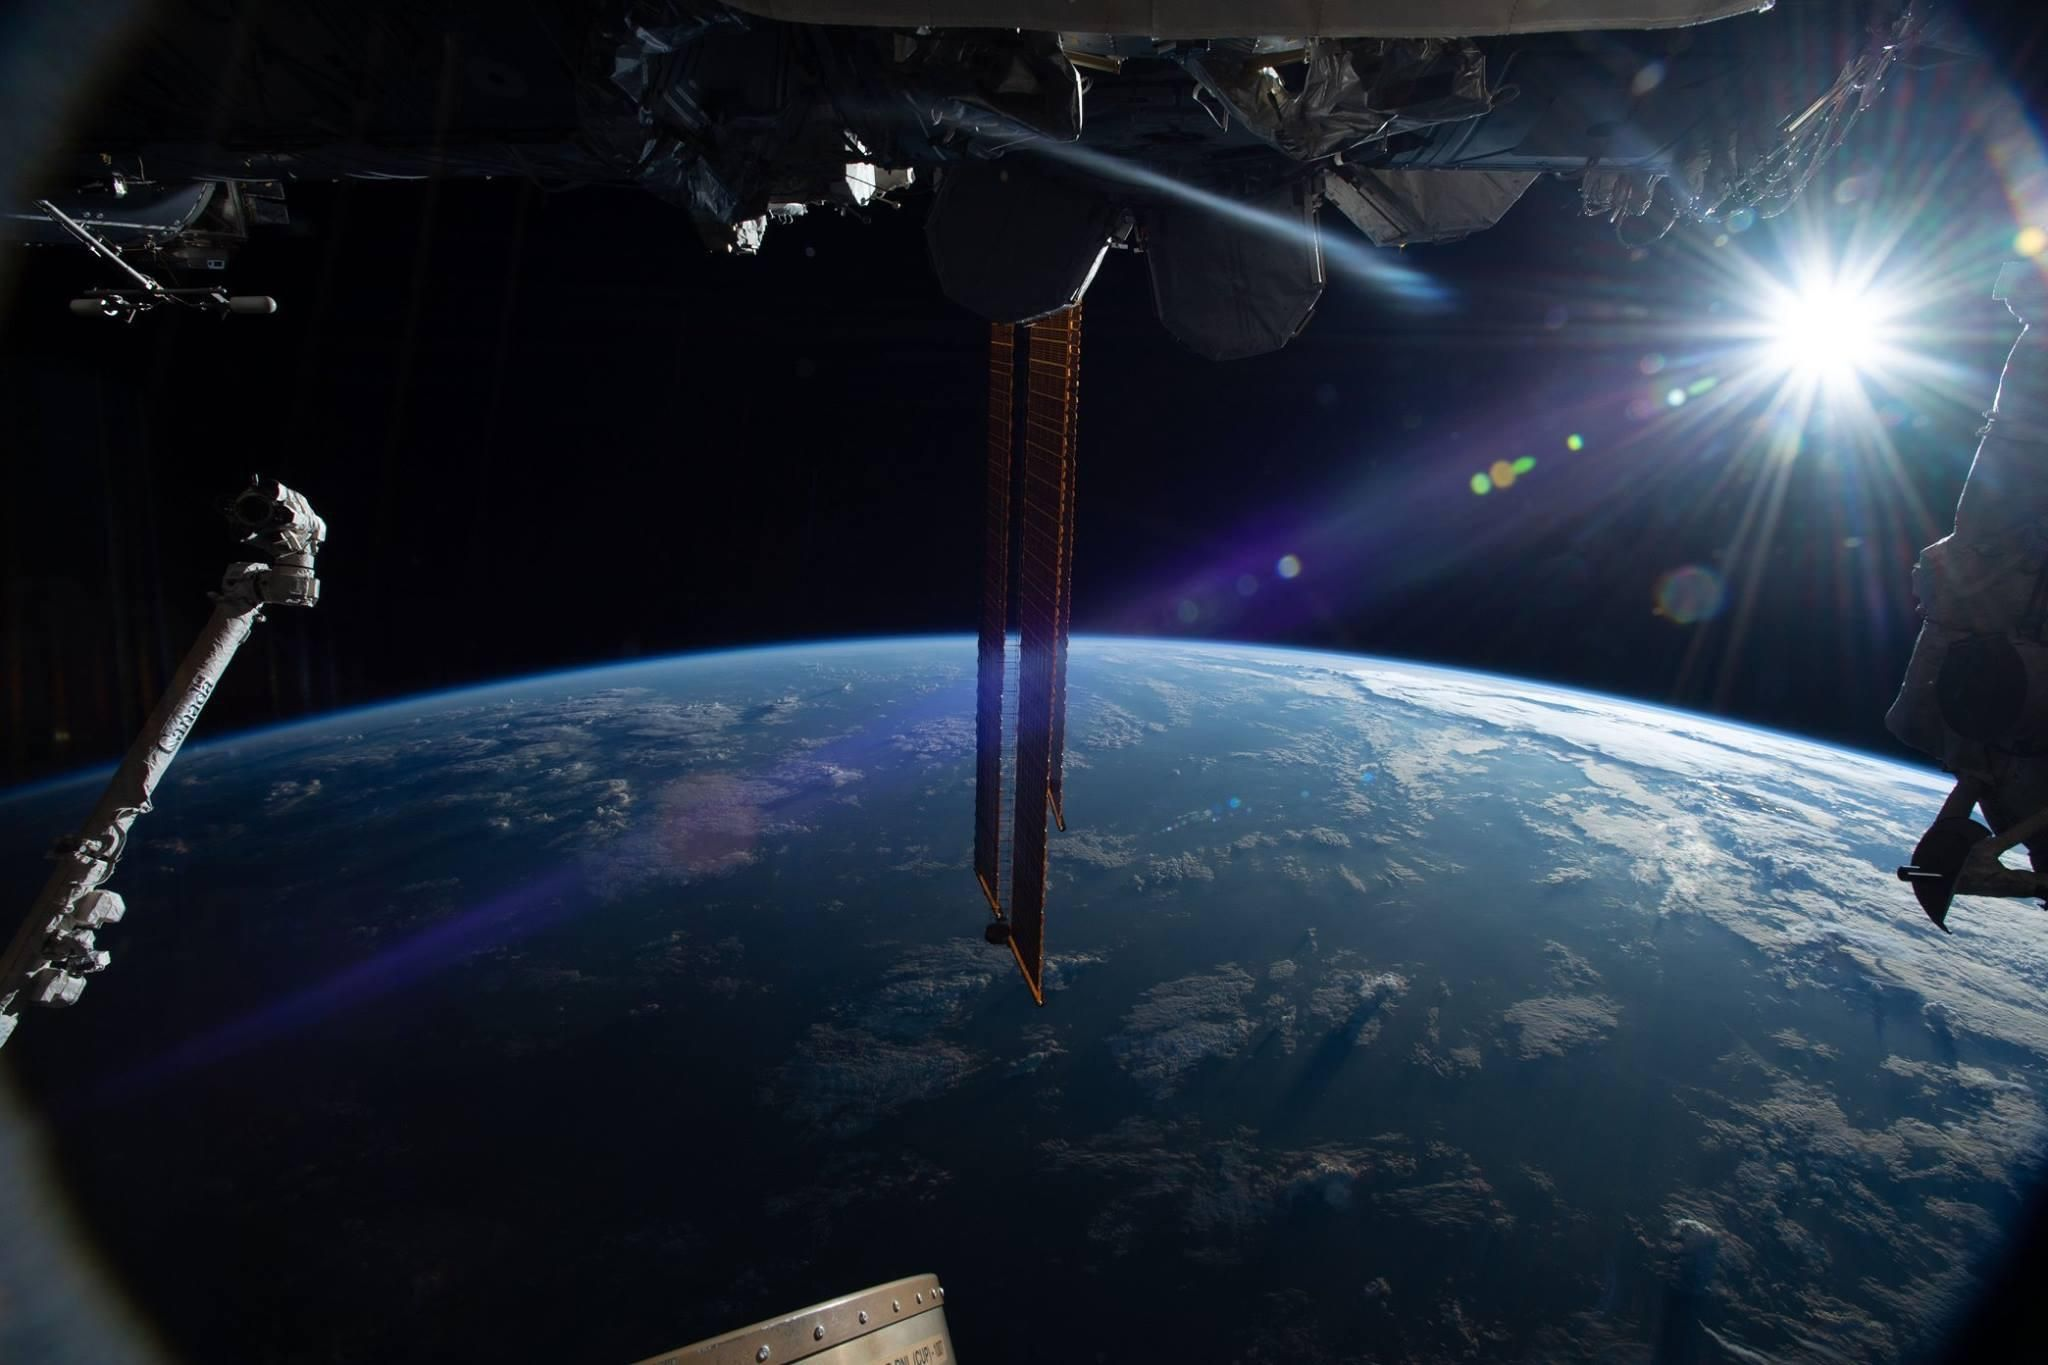 Picture taken from the International Space Station.